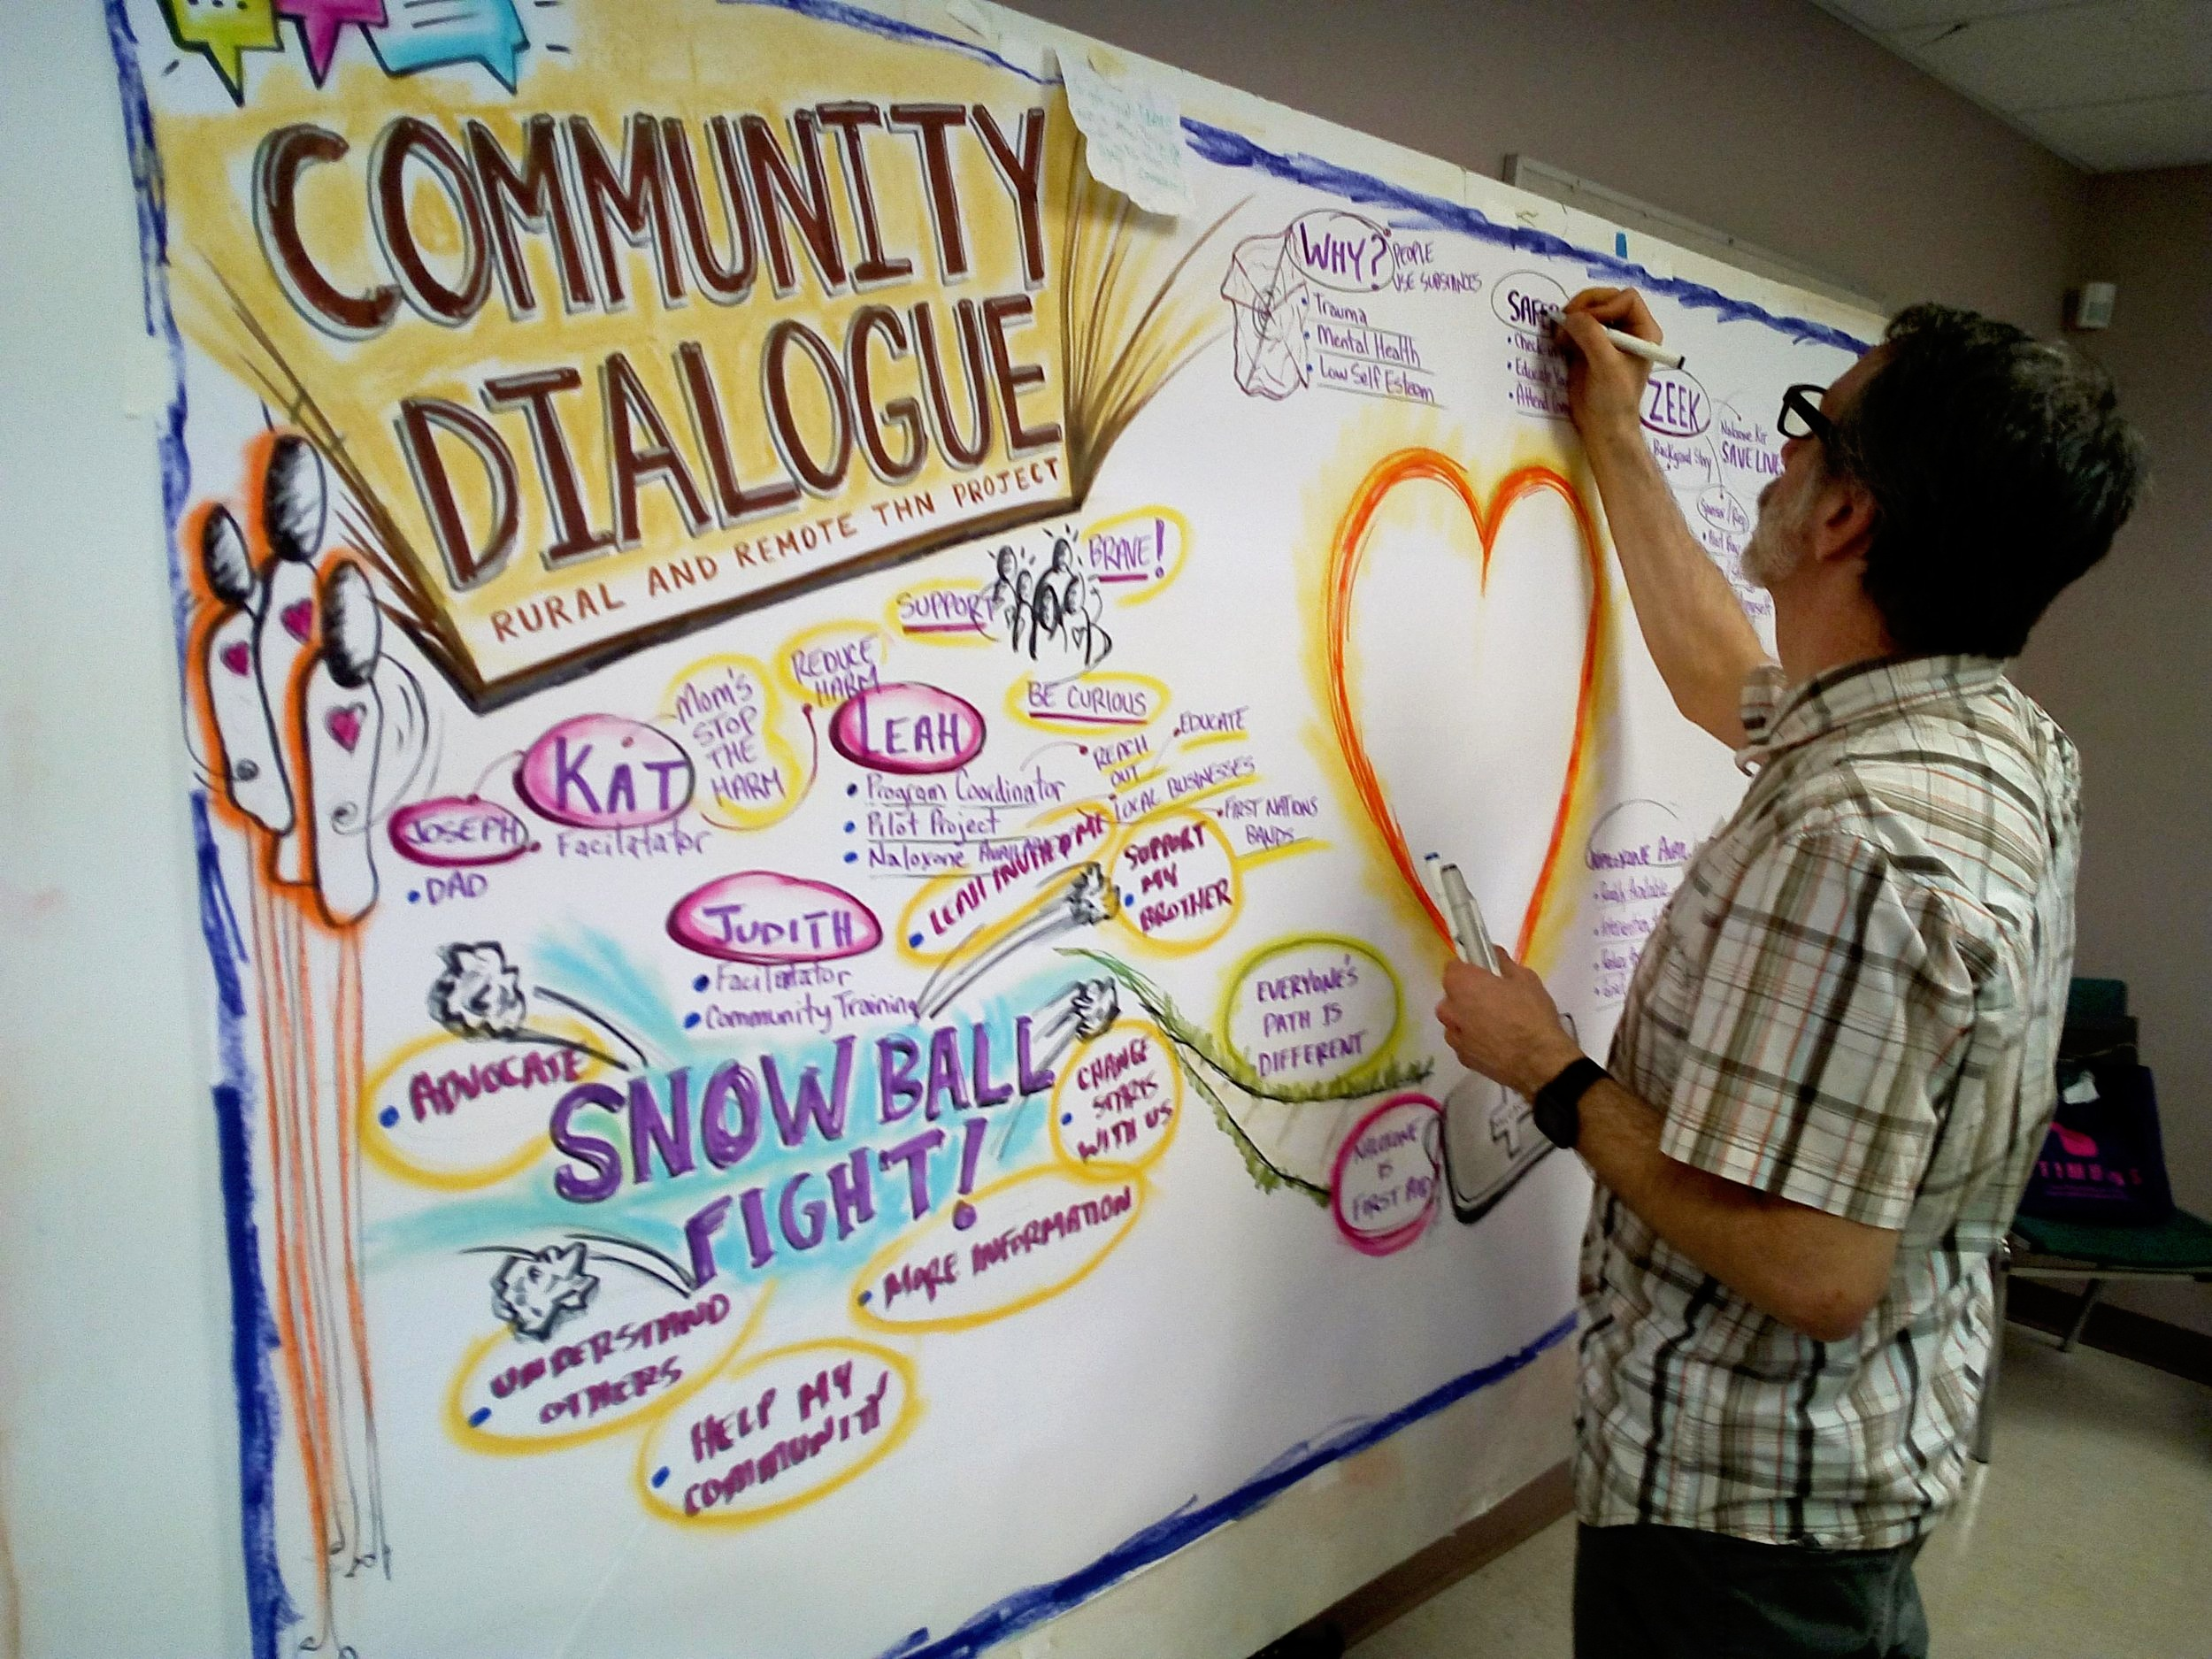 COMMUNITY DIALOGUE - Live graphic recording of community members sharing and discussing ideas around naloxone kit availability in rural and remote community of Deroche, British Columbia.Format: 4' x 8' presentation paper, April 2019